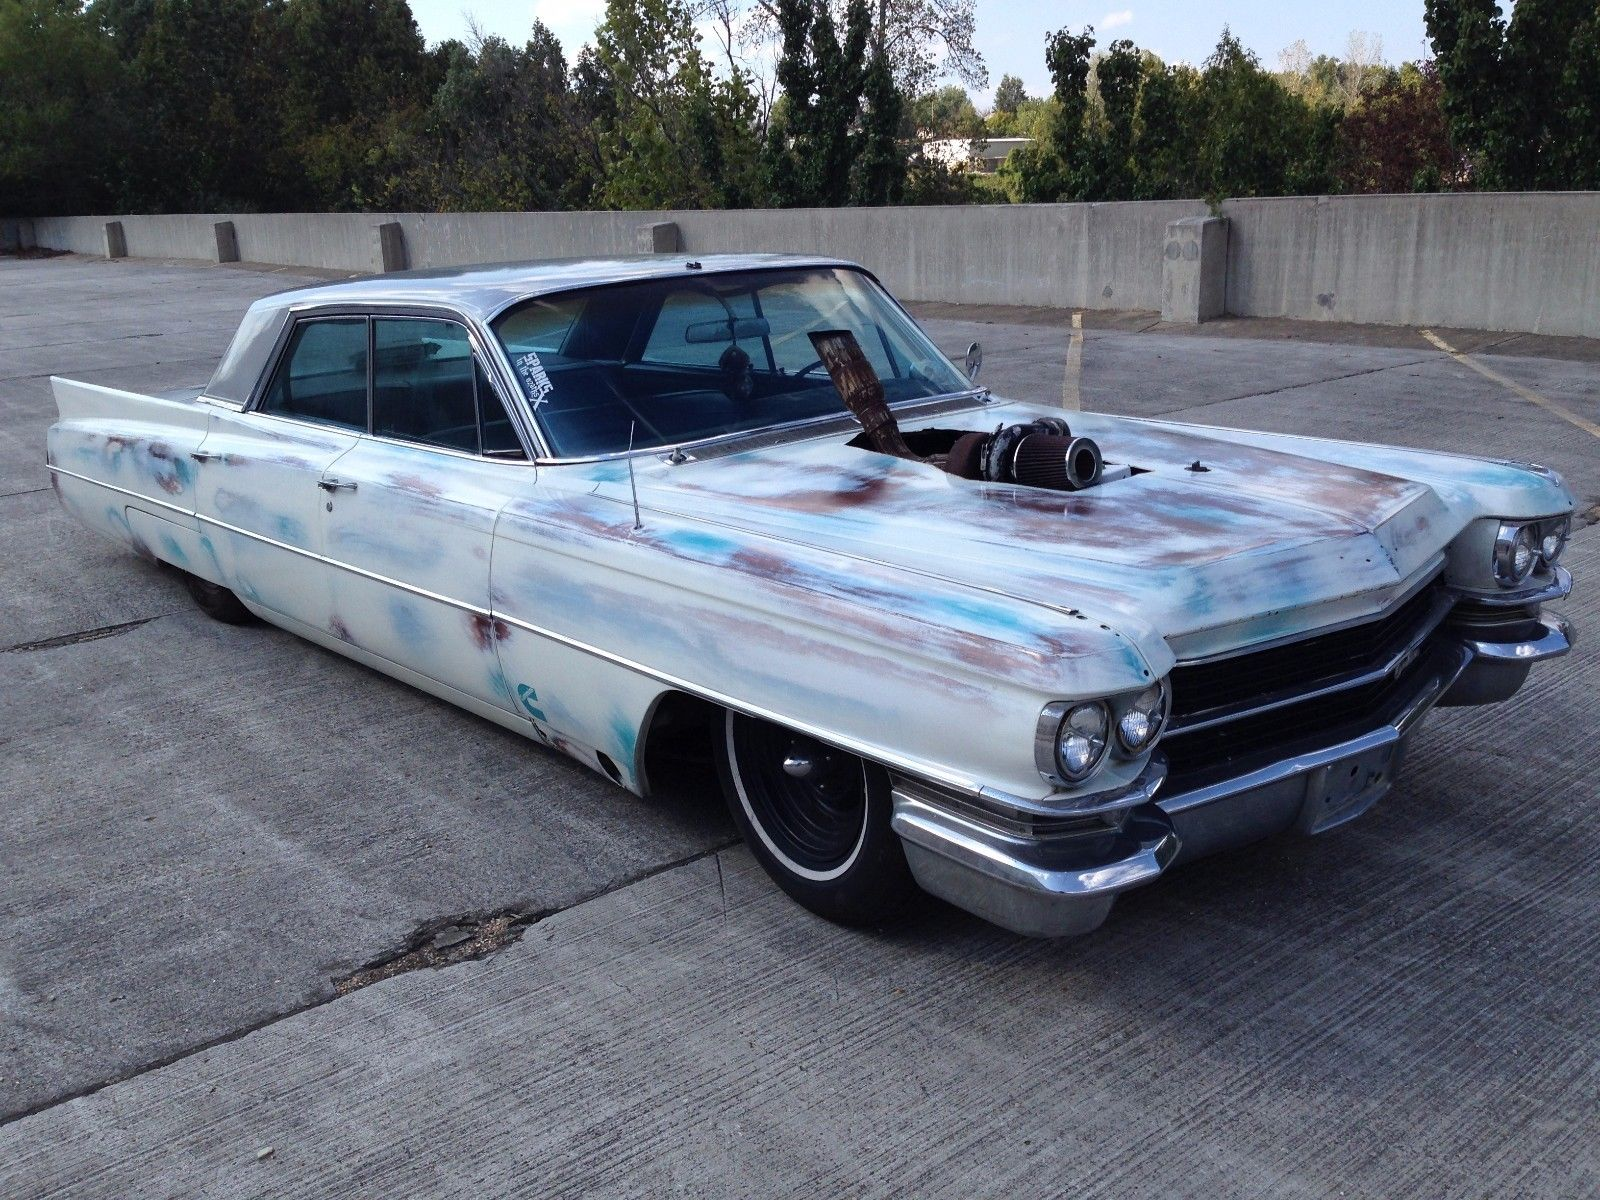 for sale 1963 cadillac with a 6bt diesel inline six engine swap depot. Black Bedroom Furniture Sets. Home Design Ideas